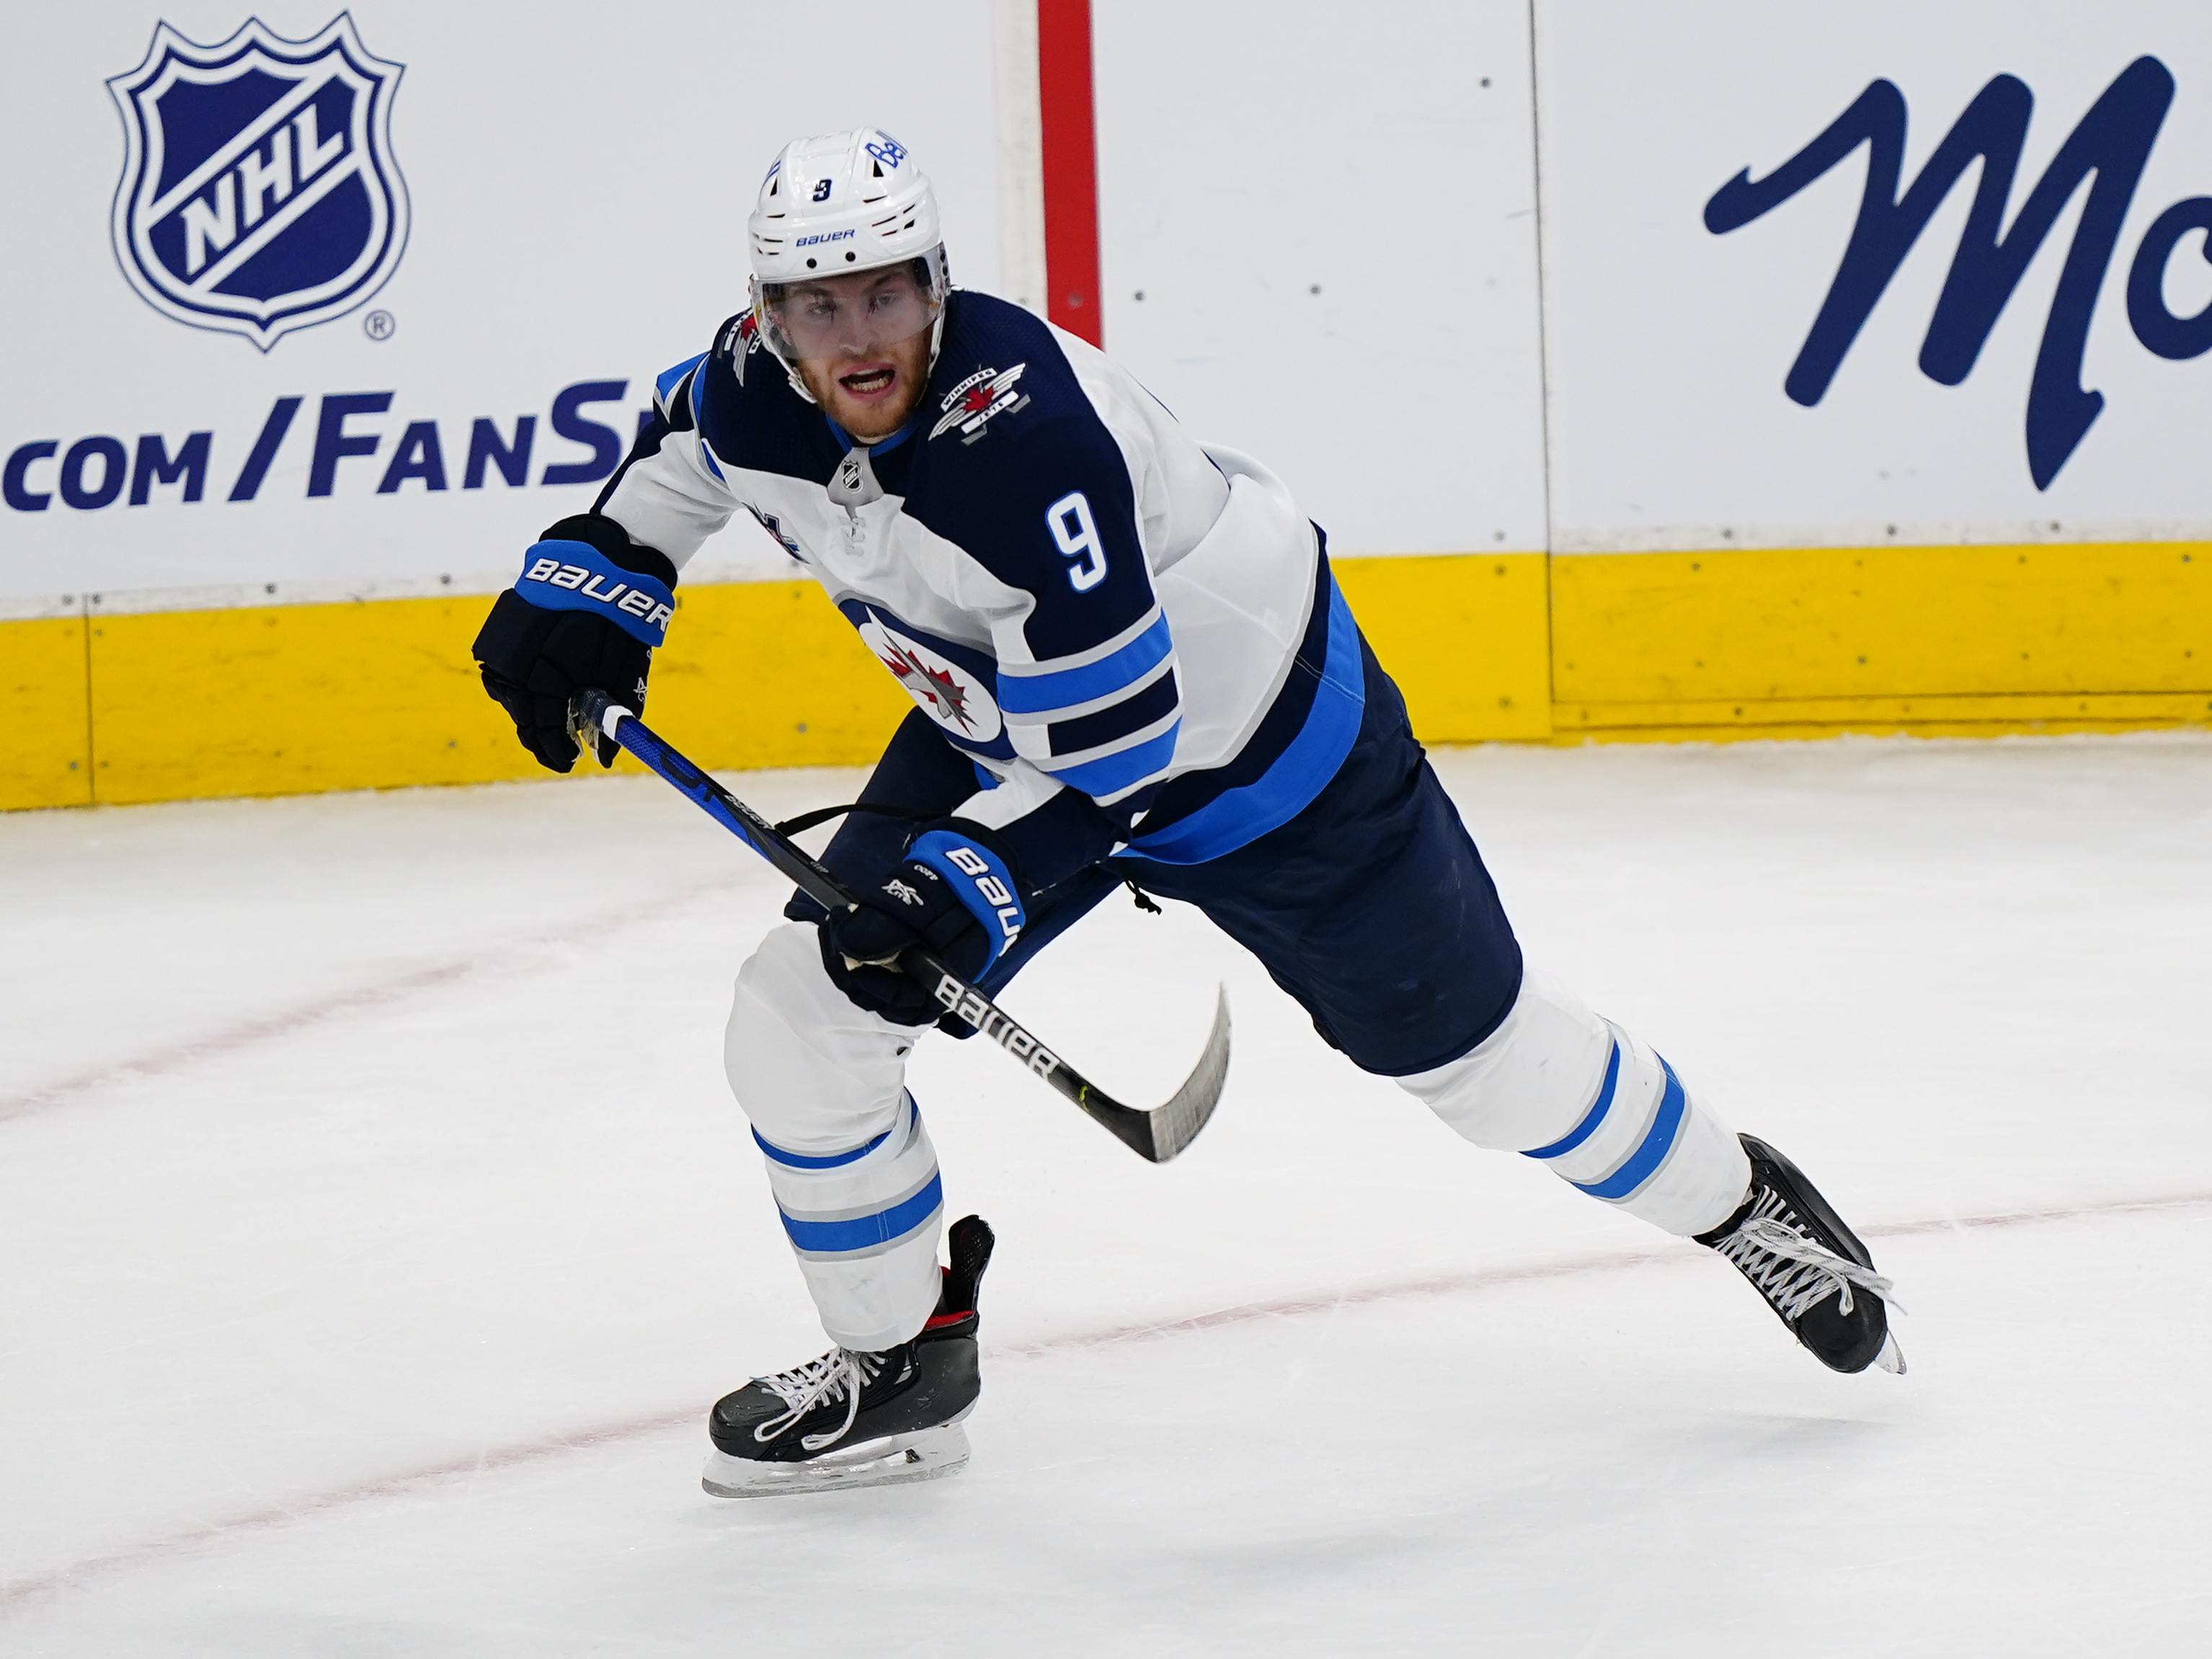 Andrew Copp registers first four-goal game of 2020-21 NHL season